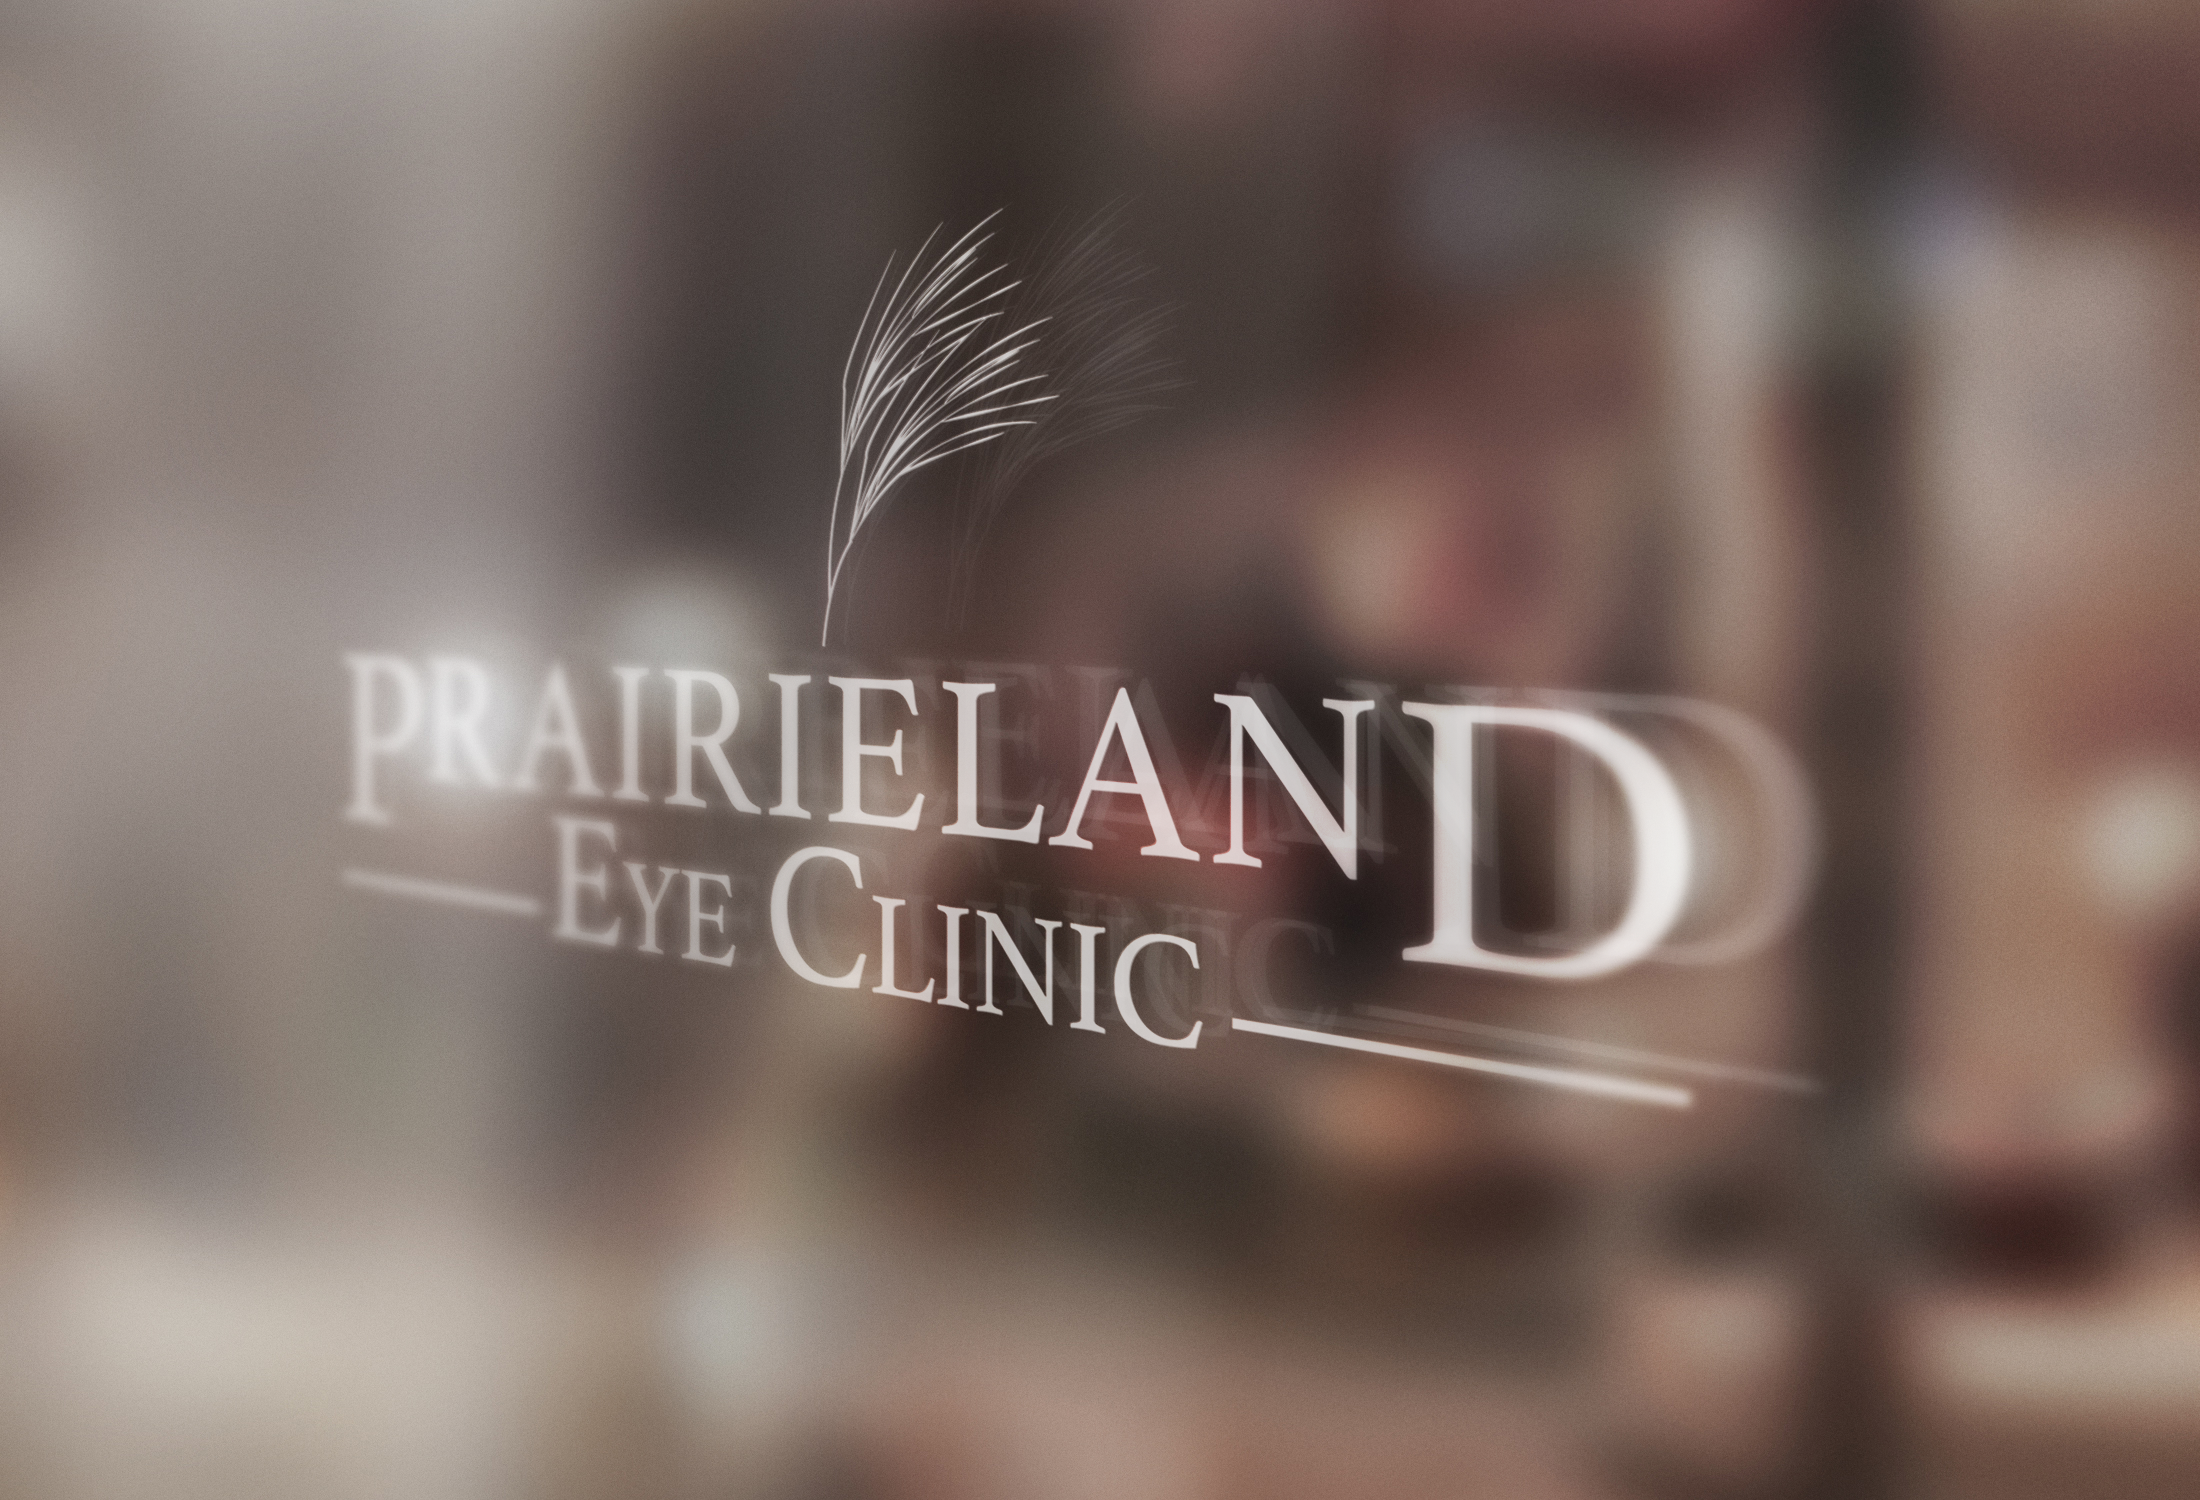 Prairieland Eye Clinic